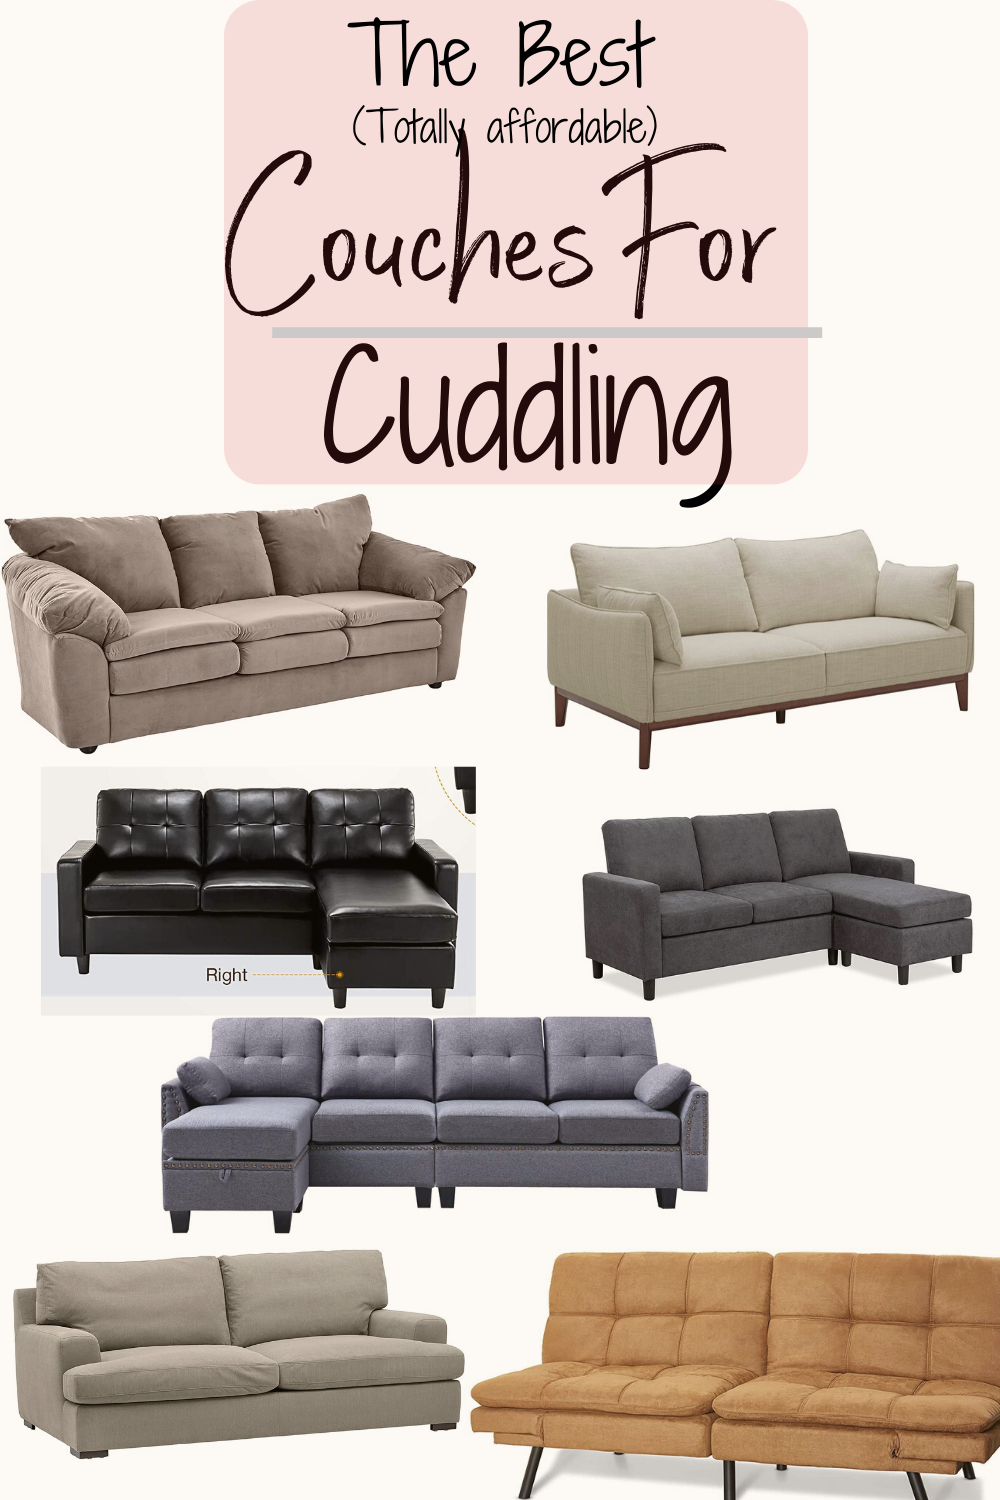 8 Best Couches For Cuddling In 2021 Buying Guide Swankyden Affordable Couch Cool Couches Couch